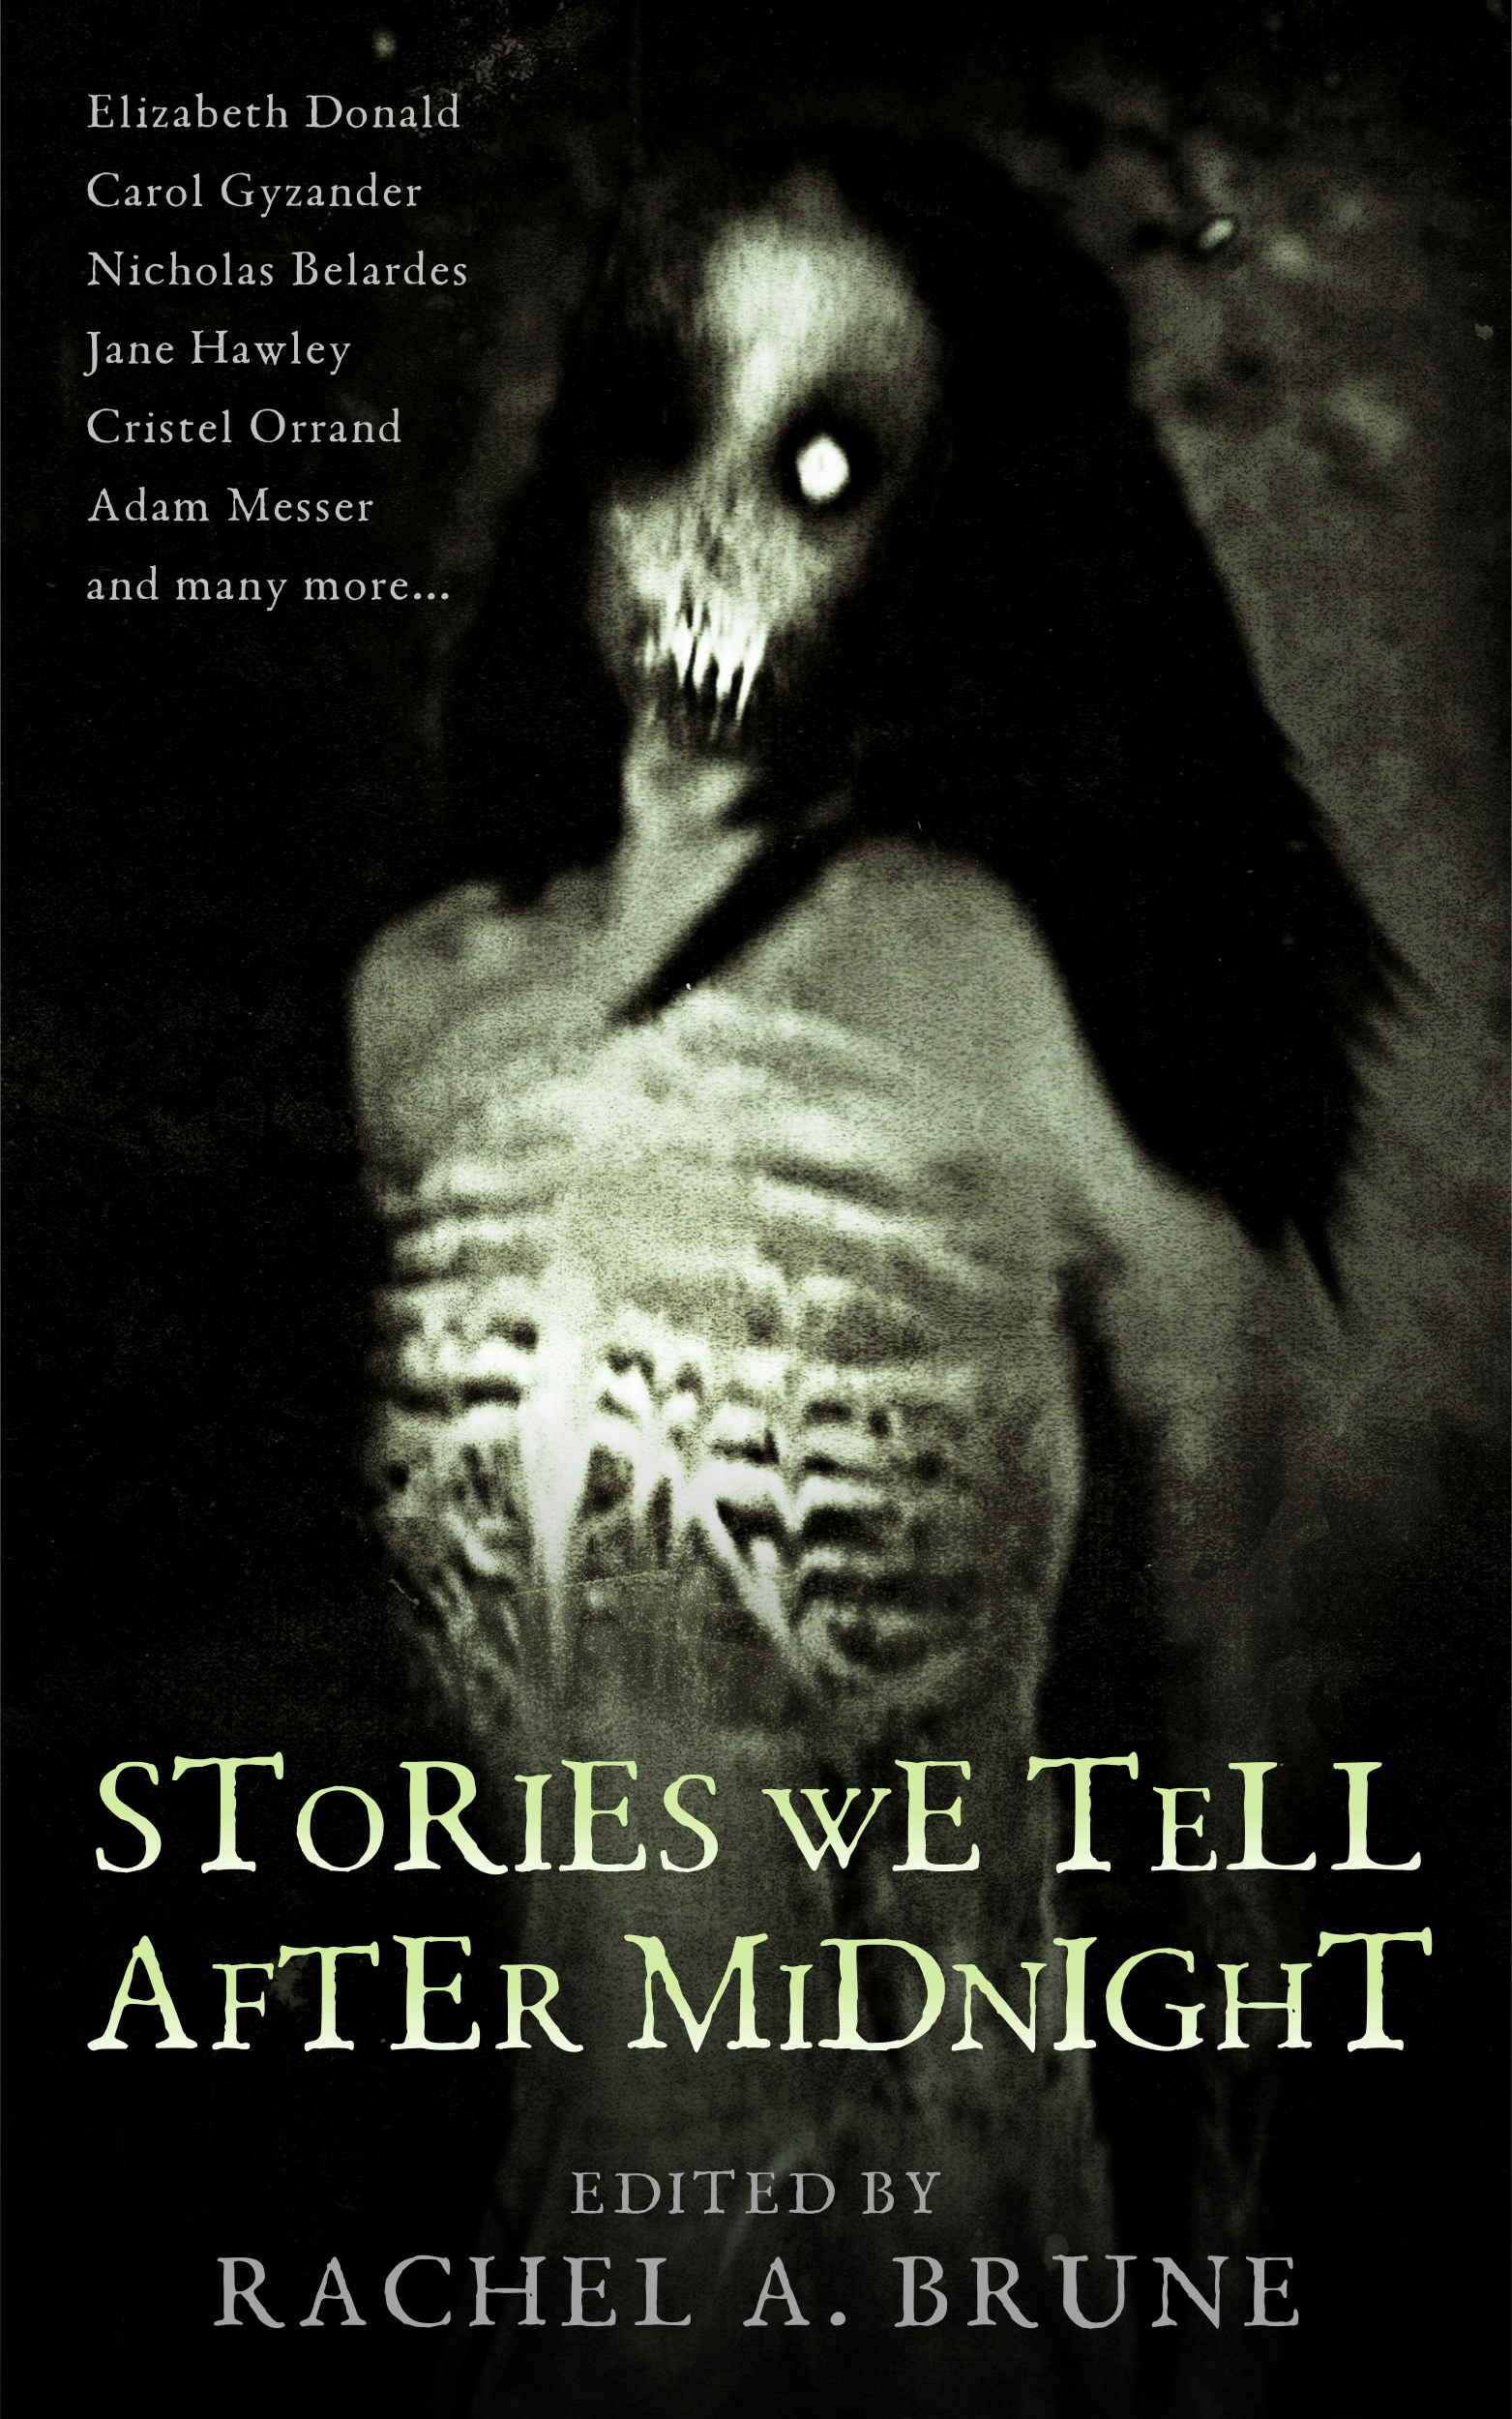 Stories We Tell After Midnight